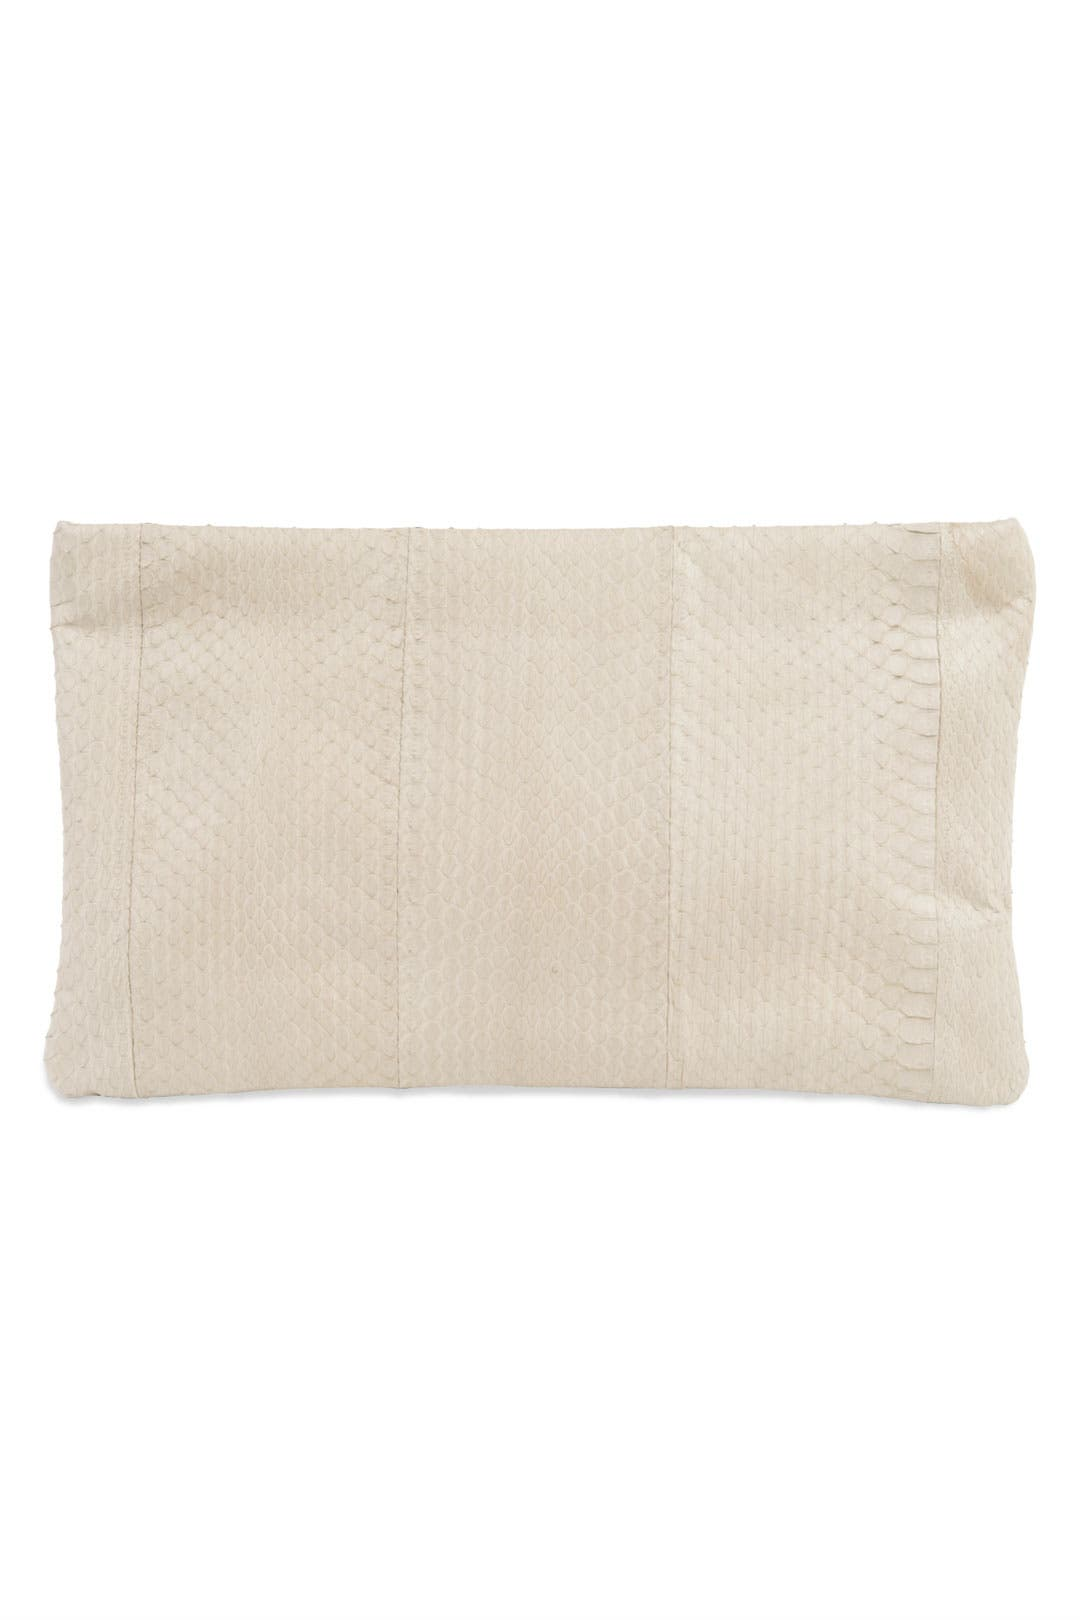 Nude Zip Me Up Clutch by Felix Rey